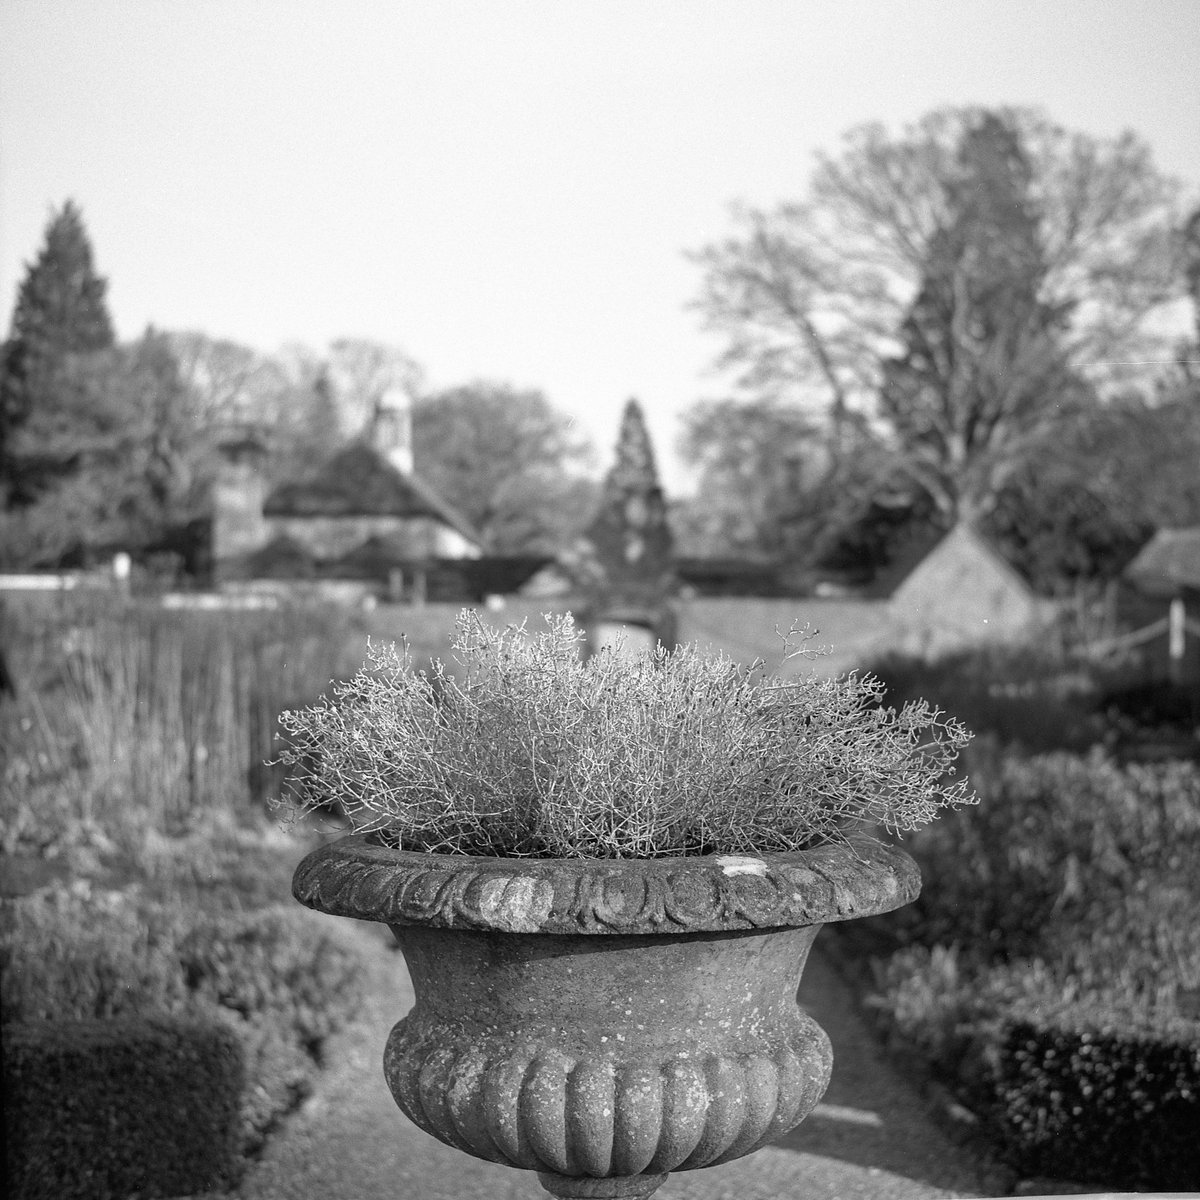 RT @calor_gas_terry: #FP4Party Day 7. The walled garden at Wakehurst Place. Zeiss Ikonta LC29 0.5+9.5 https://t.co/vxHrkEW0lN